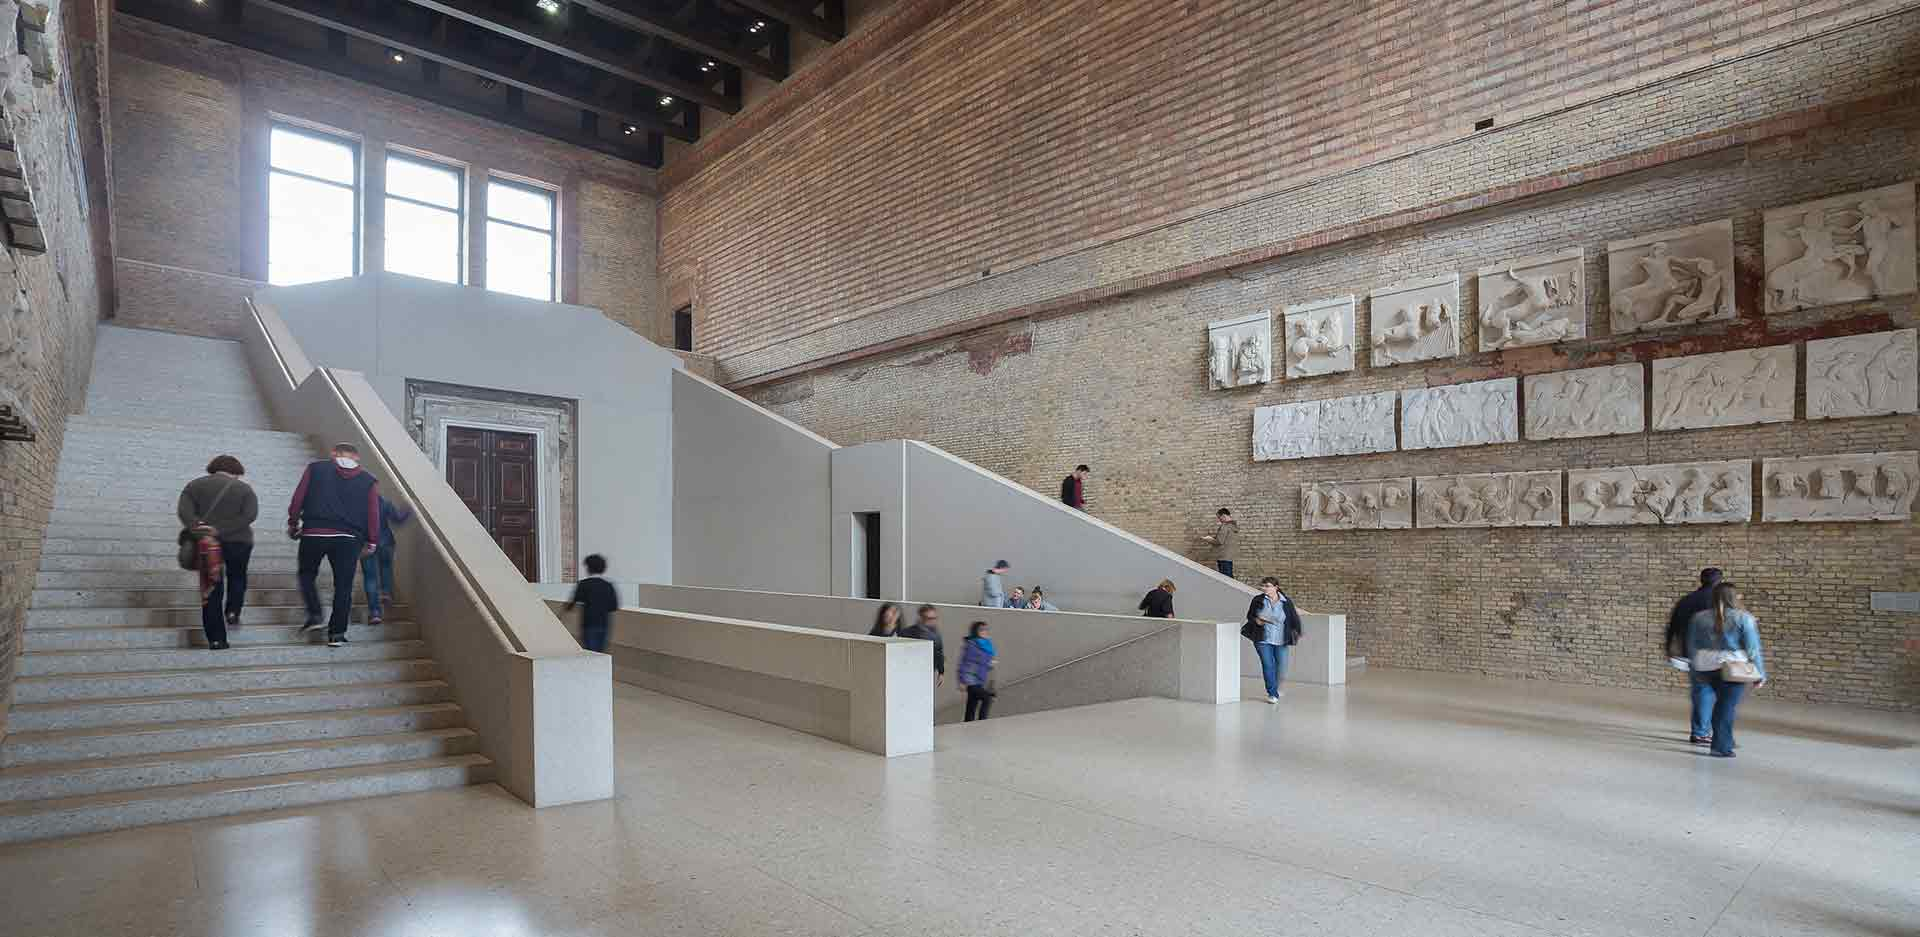 Staircase in the Neues Museum